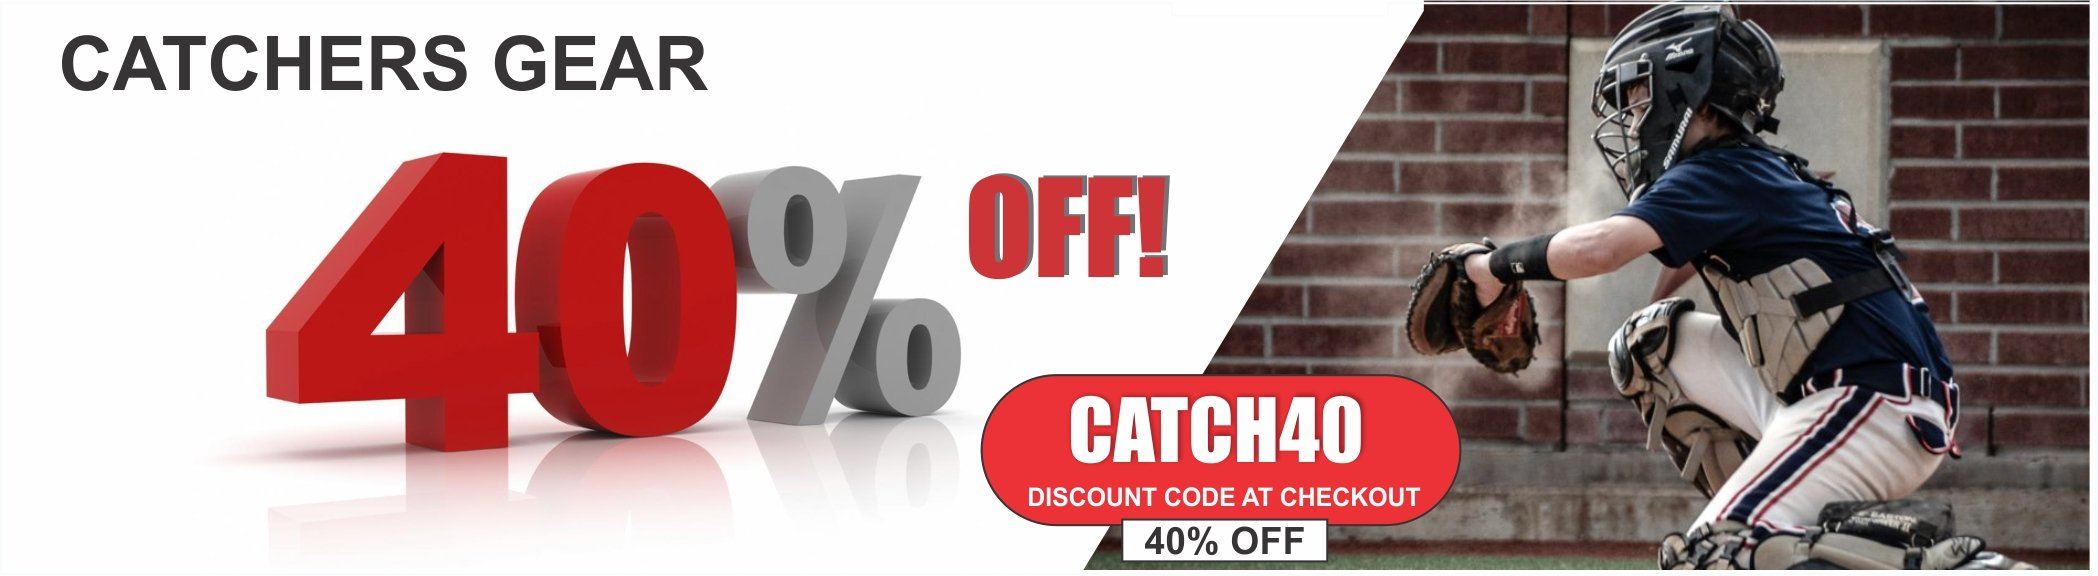 Catchers Gear CLEARANCE!!!